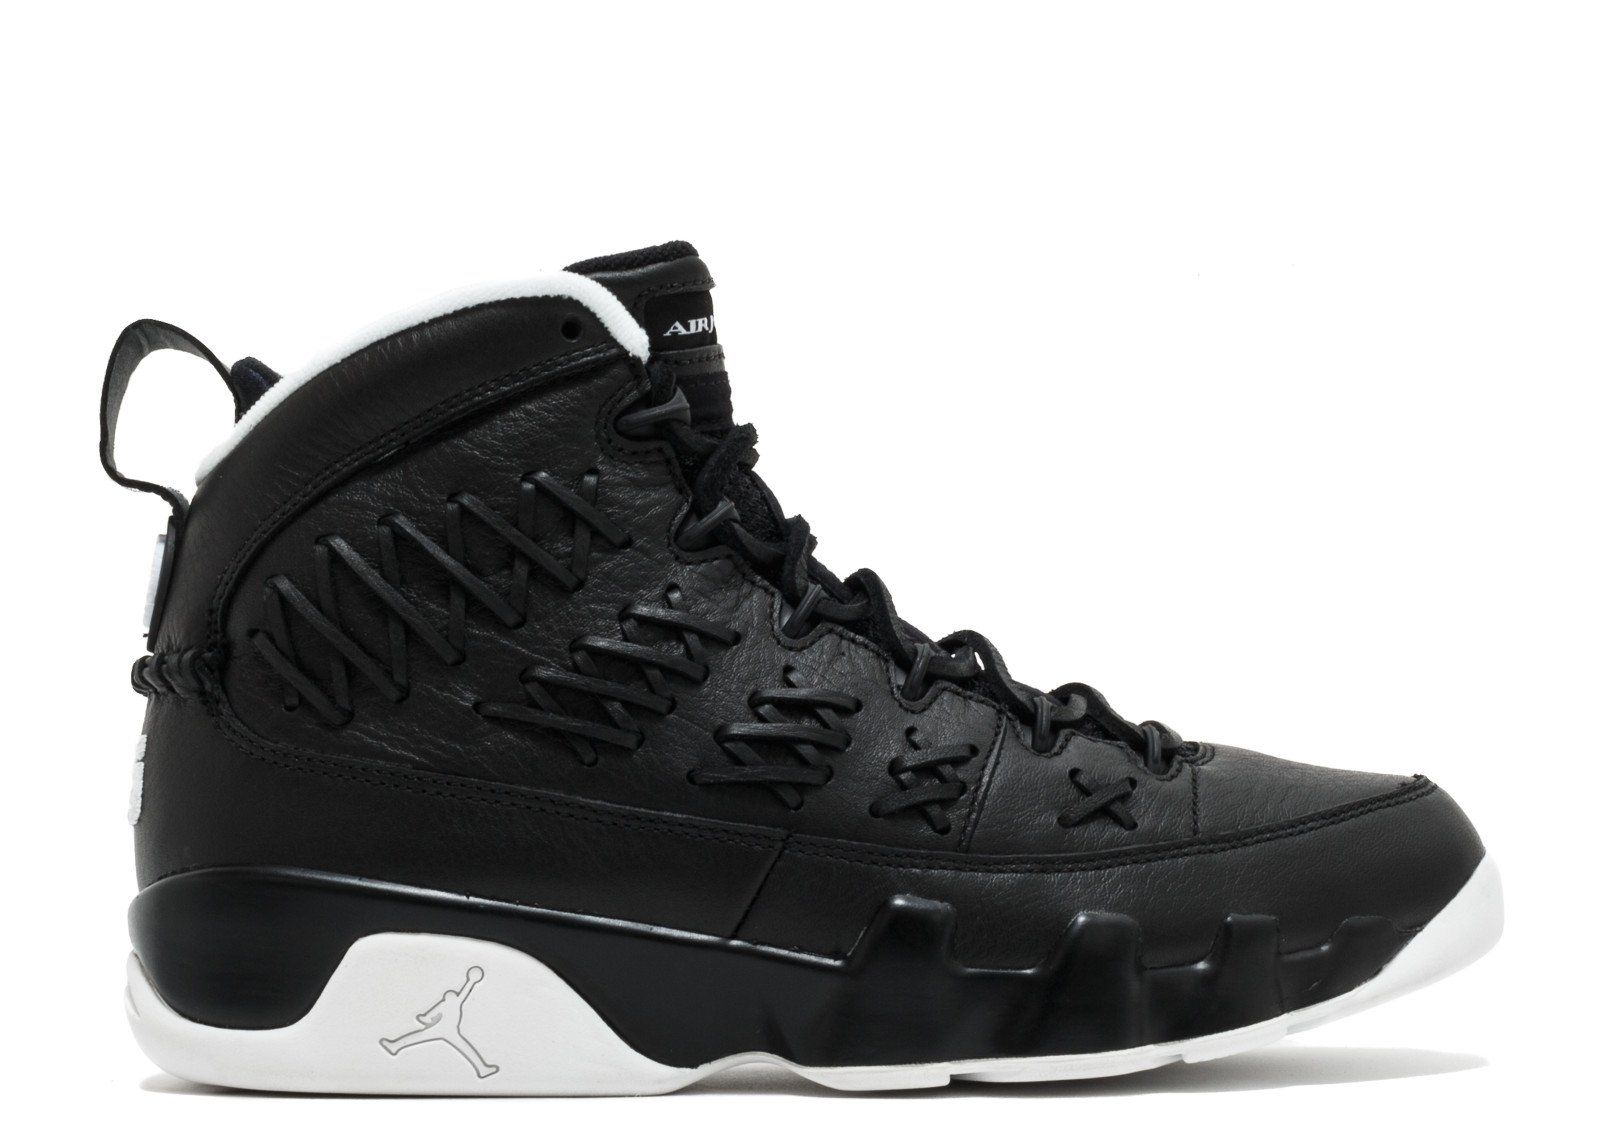 e046872c9452d2 Air Jordan 9 Retro Pinnacle Pack Birmingham